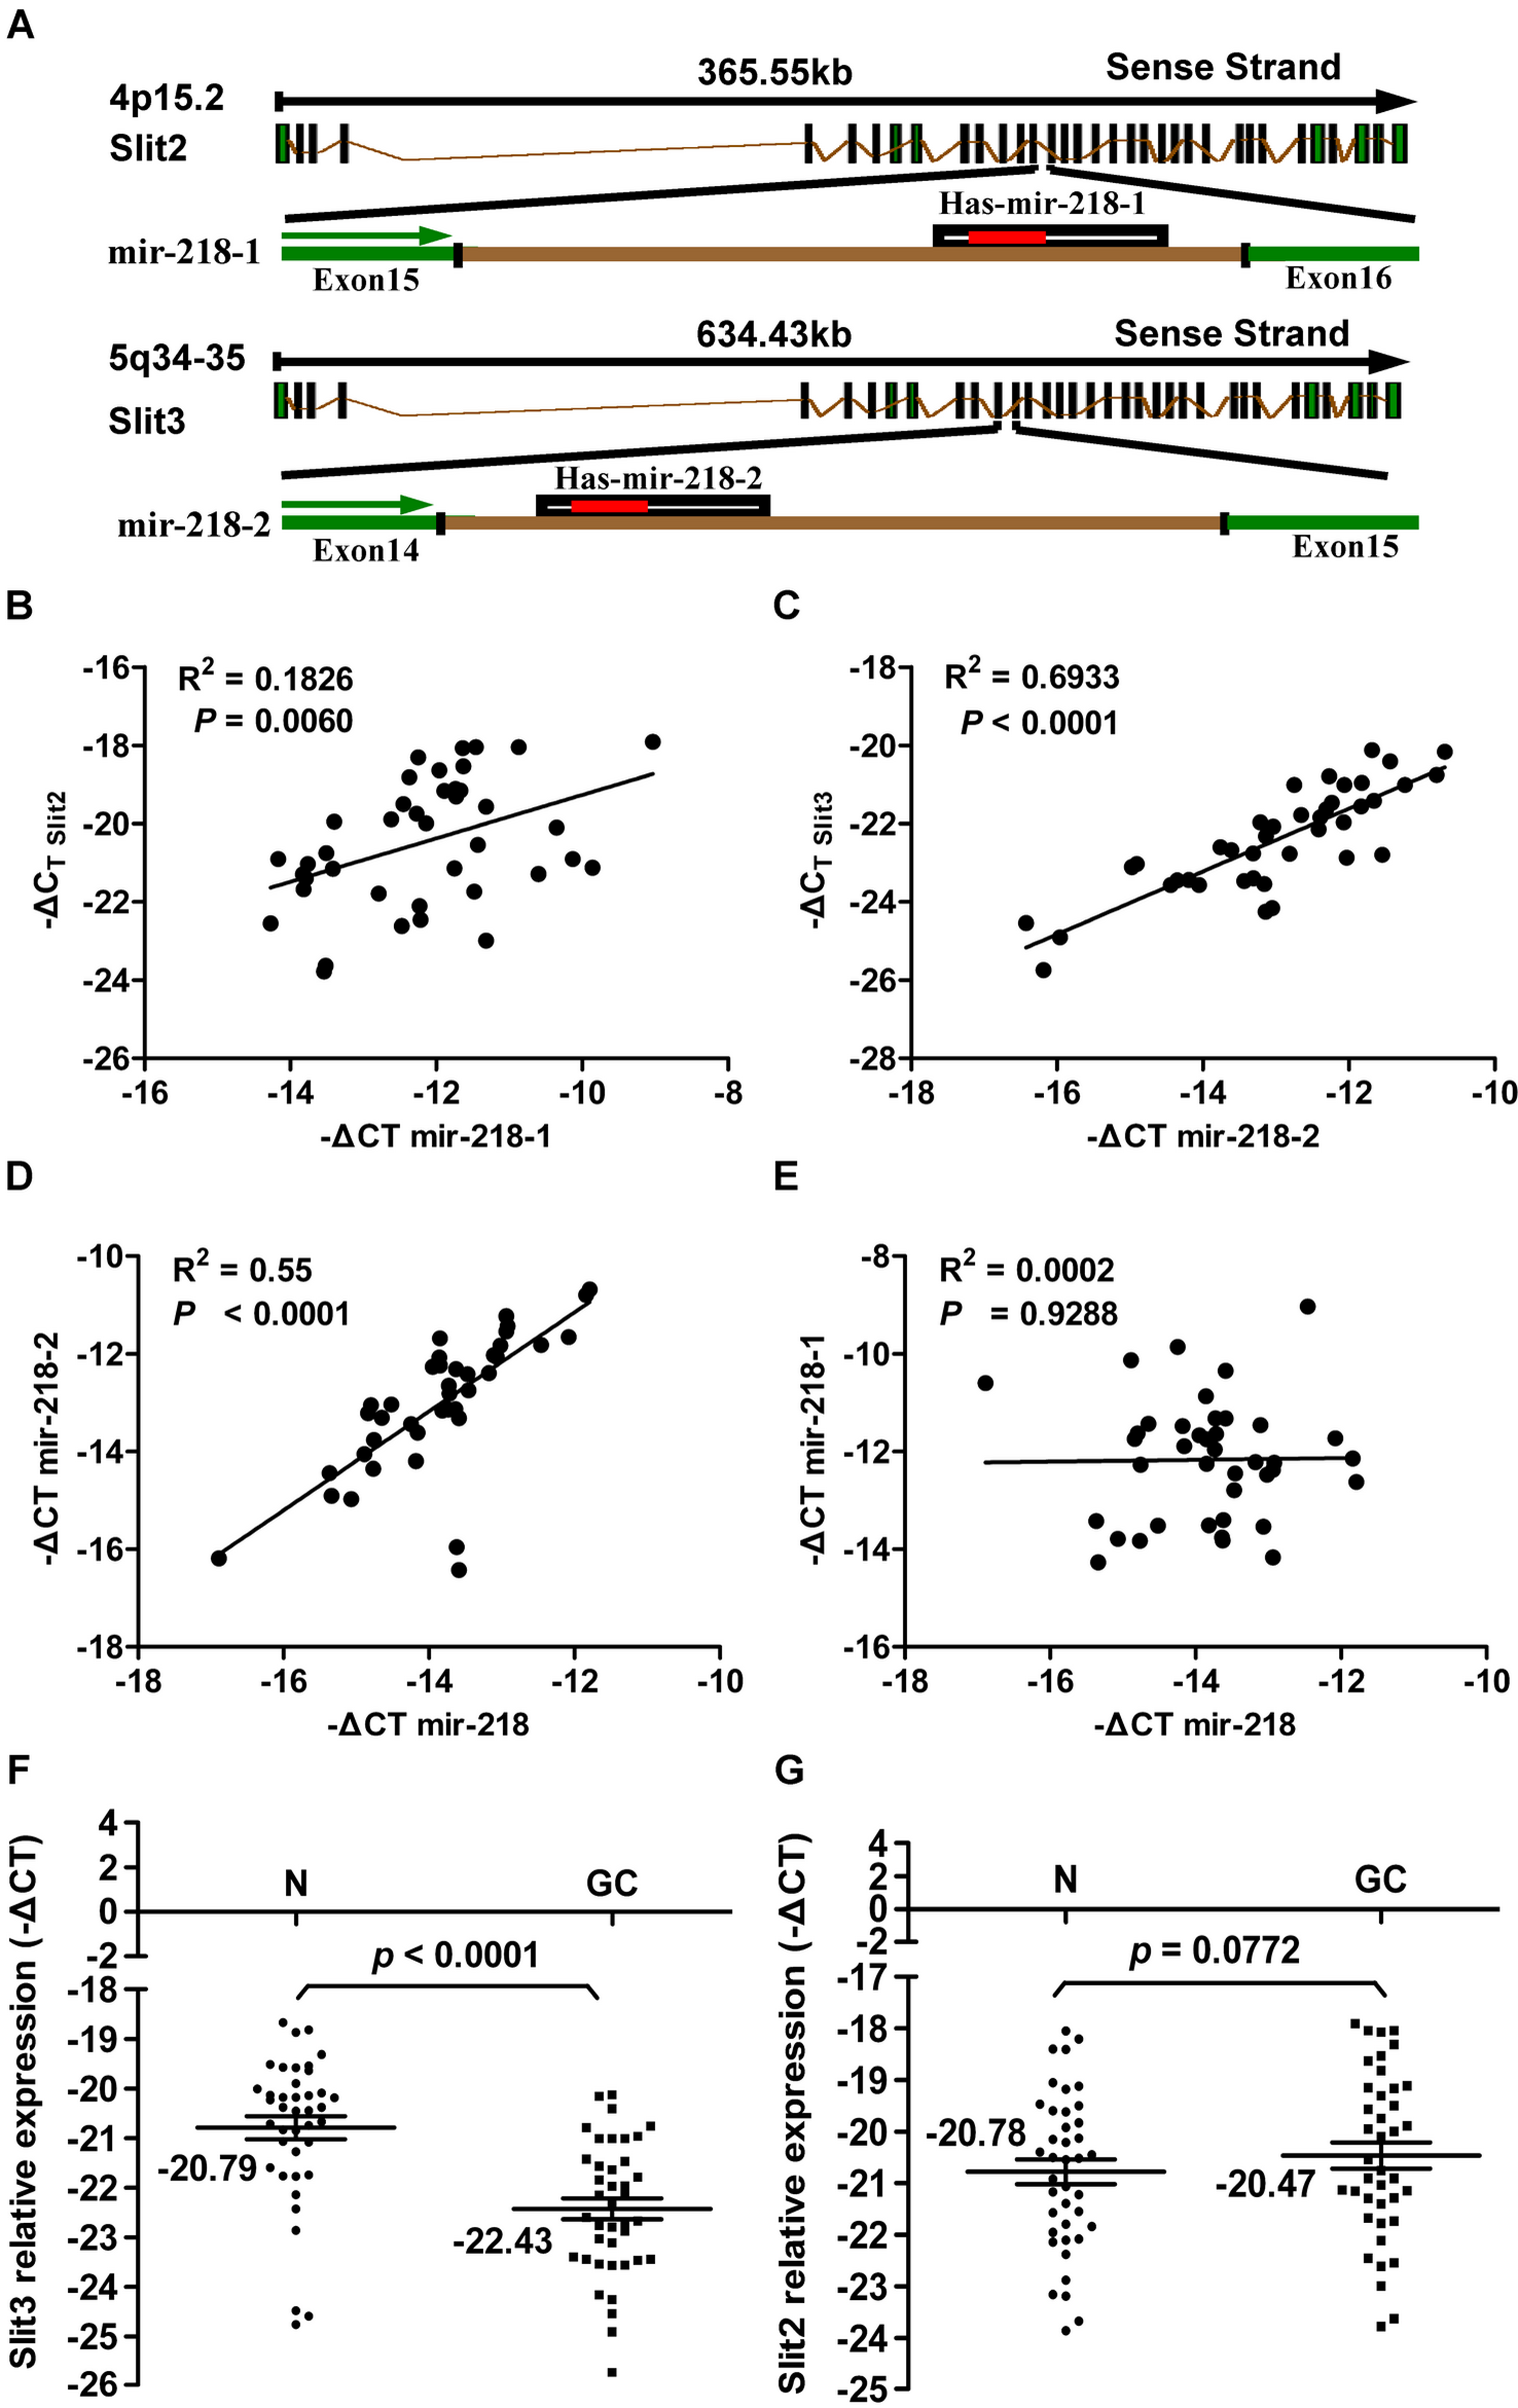 Results of the expression analysis of miR-218, miR-218-1, miR-218-2, Slit2, and Slit3 in 40 matched GC tumors and corresponding normal tissues via qRT–PCR.